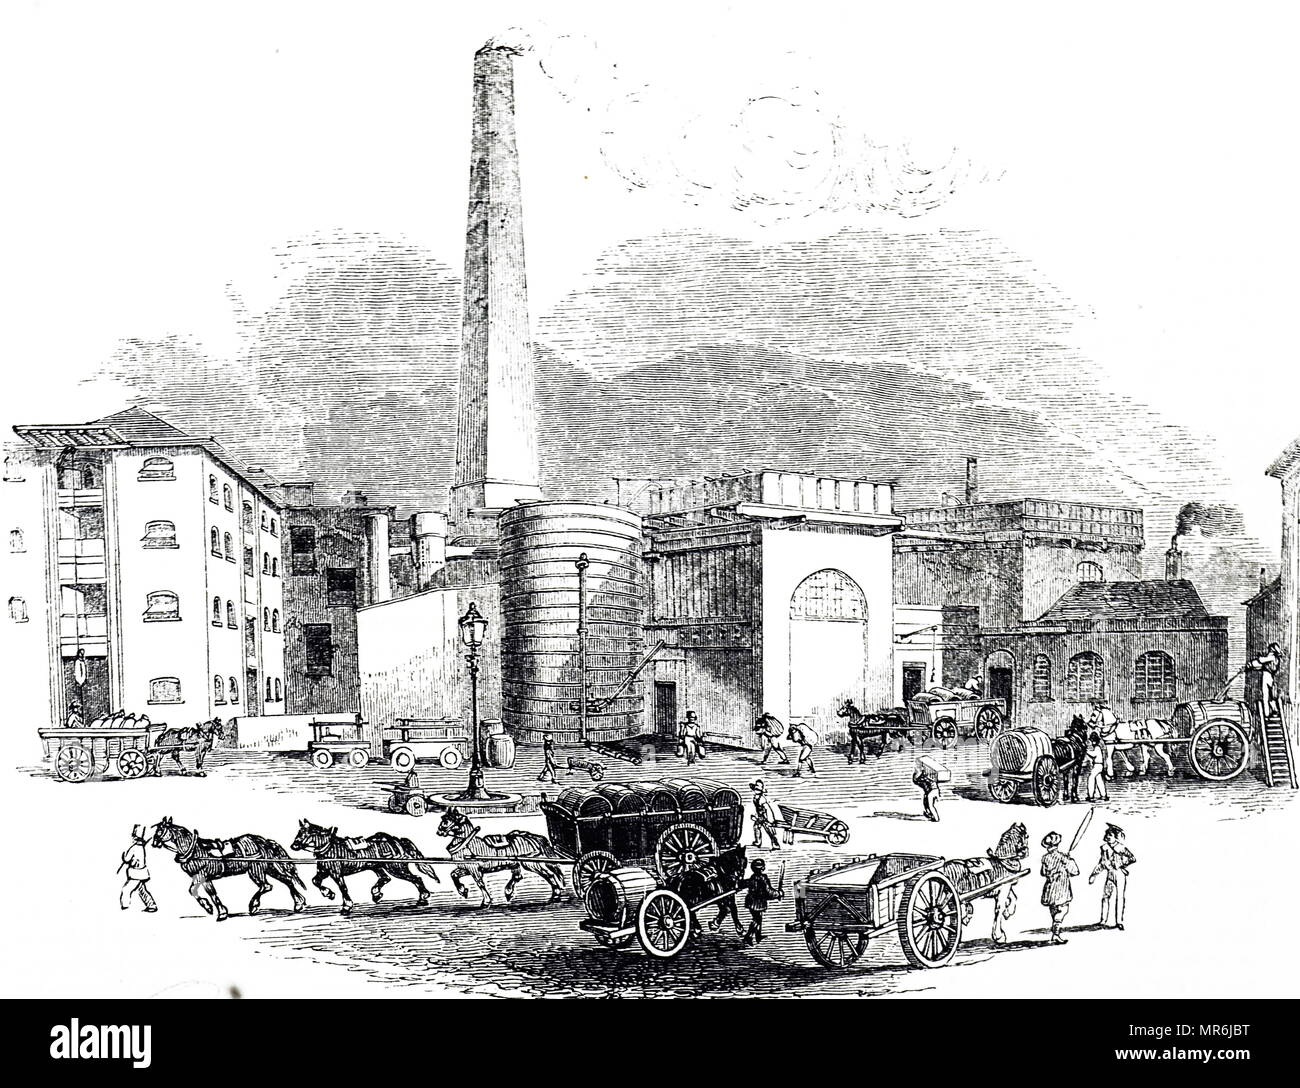 Engraving depicting a view of Octavius Smith & Co's distillery, Thames Bank. The design for the chimney was inspired by 'Cleopatra's Needle'. Dated 19th century - Stock Image